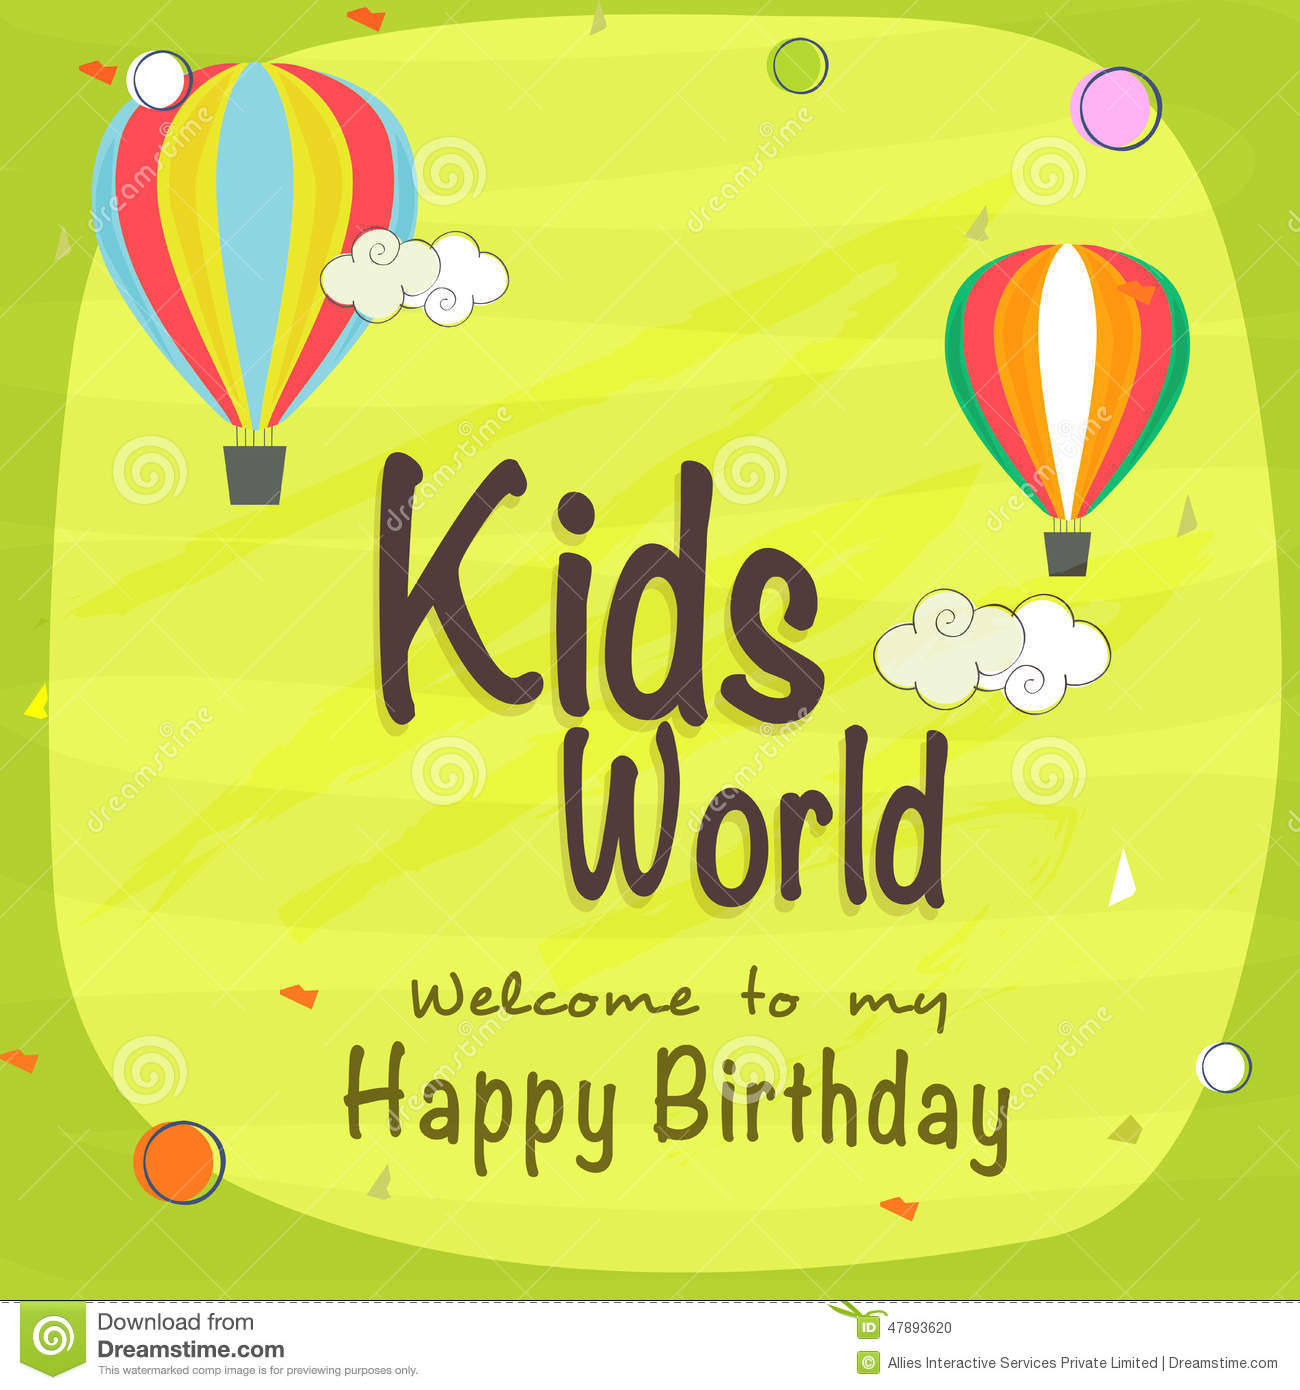 Kids birthday celebration invitation card stock illustration kids birthday celebration invitation card filmwisefo